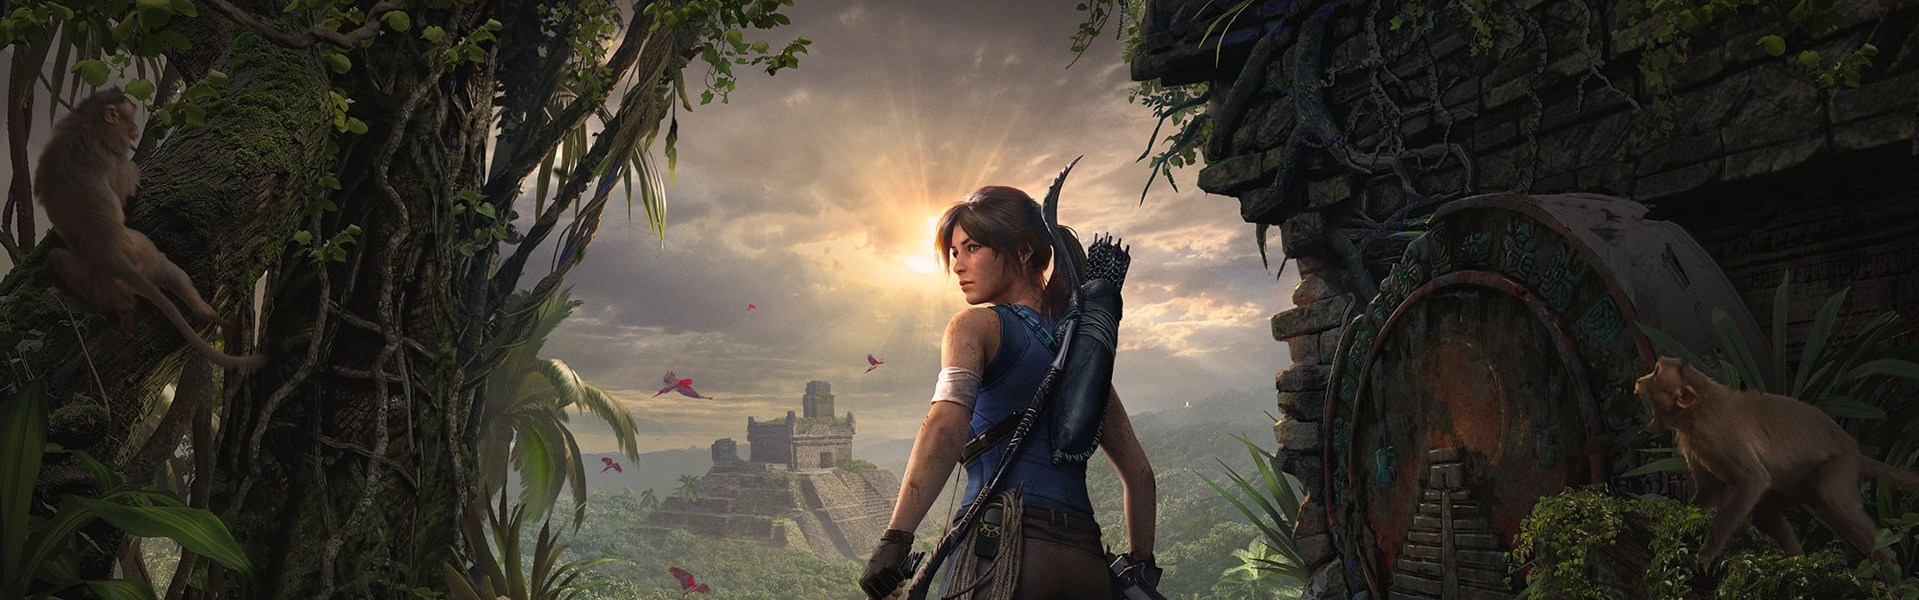 Shadow of the Tomb Raider (Definitive Edition) (Xbox One) Xbox Live Key UNITED STATES